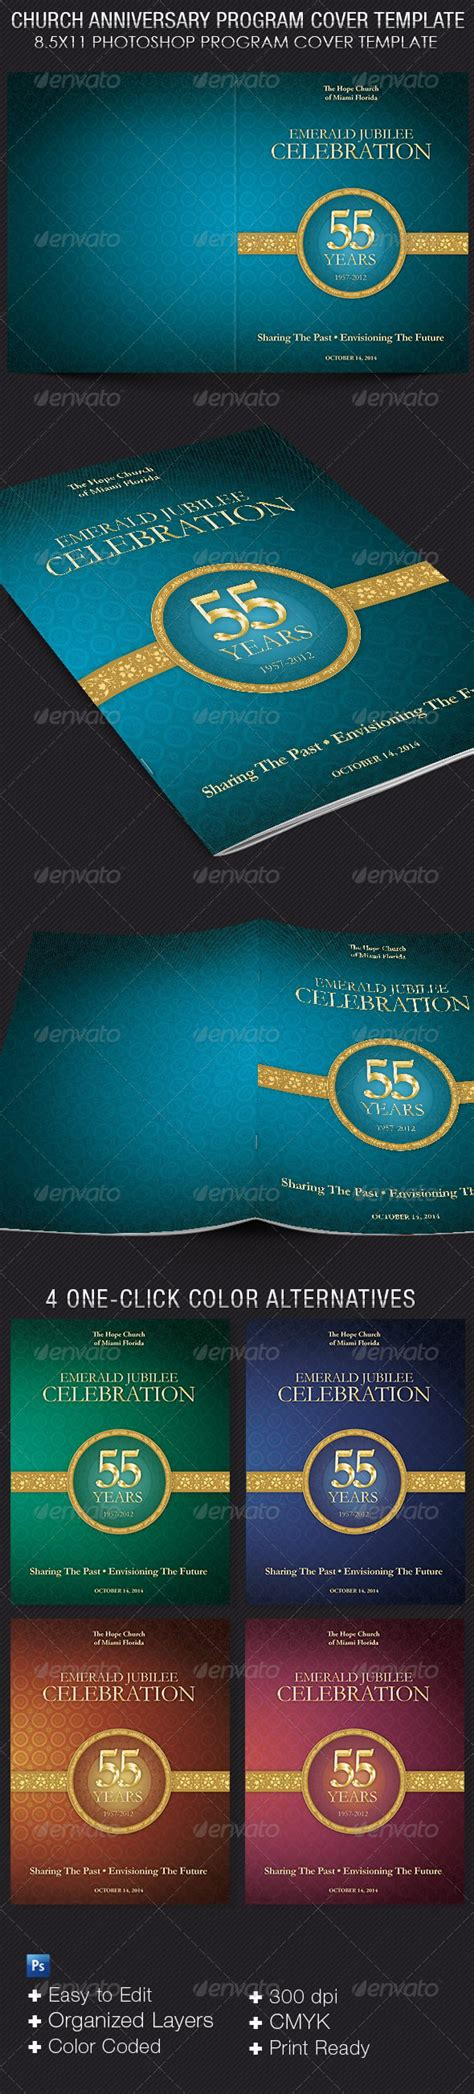 Church Anniversary Program Cover Template By 4cgraphic Graphicriver Church Program Covers Templates